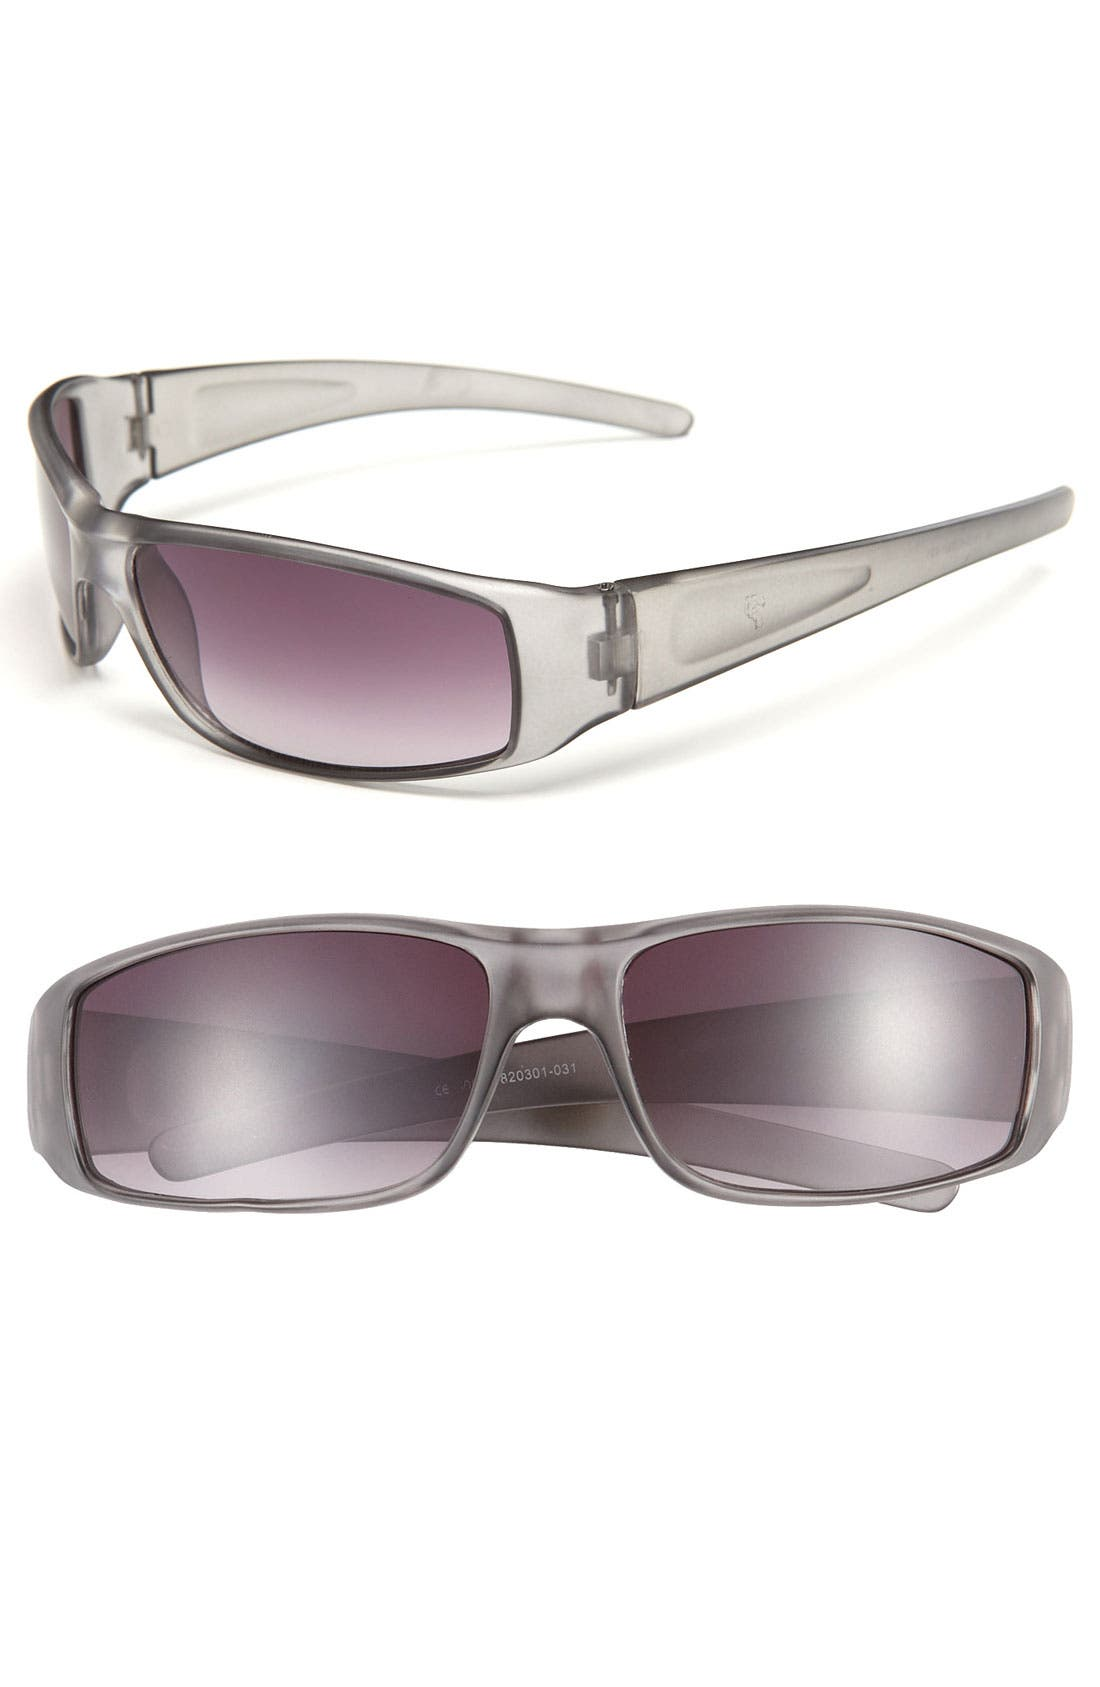 Alternate Image 1 Selected - Icon Eyewear 'Crosby' Sunglasses (Big Boys)